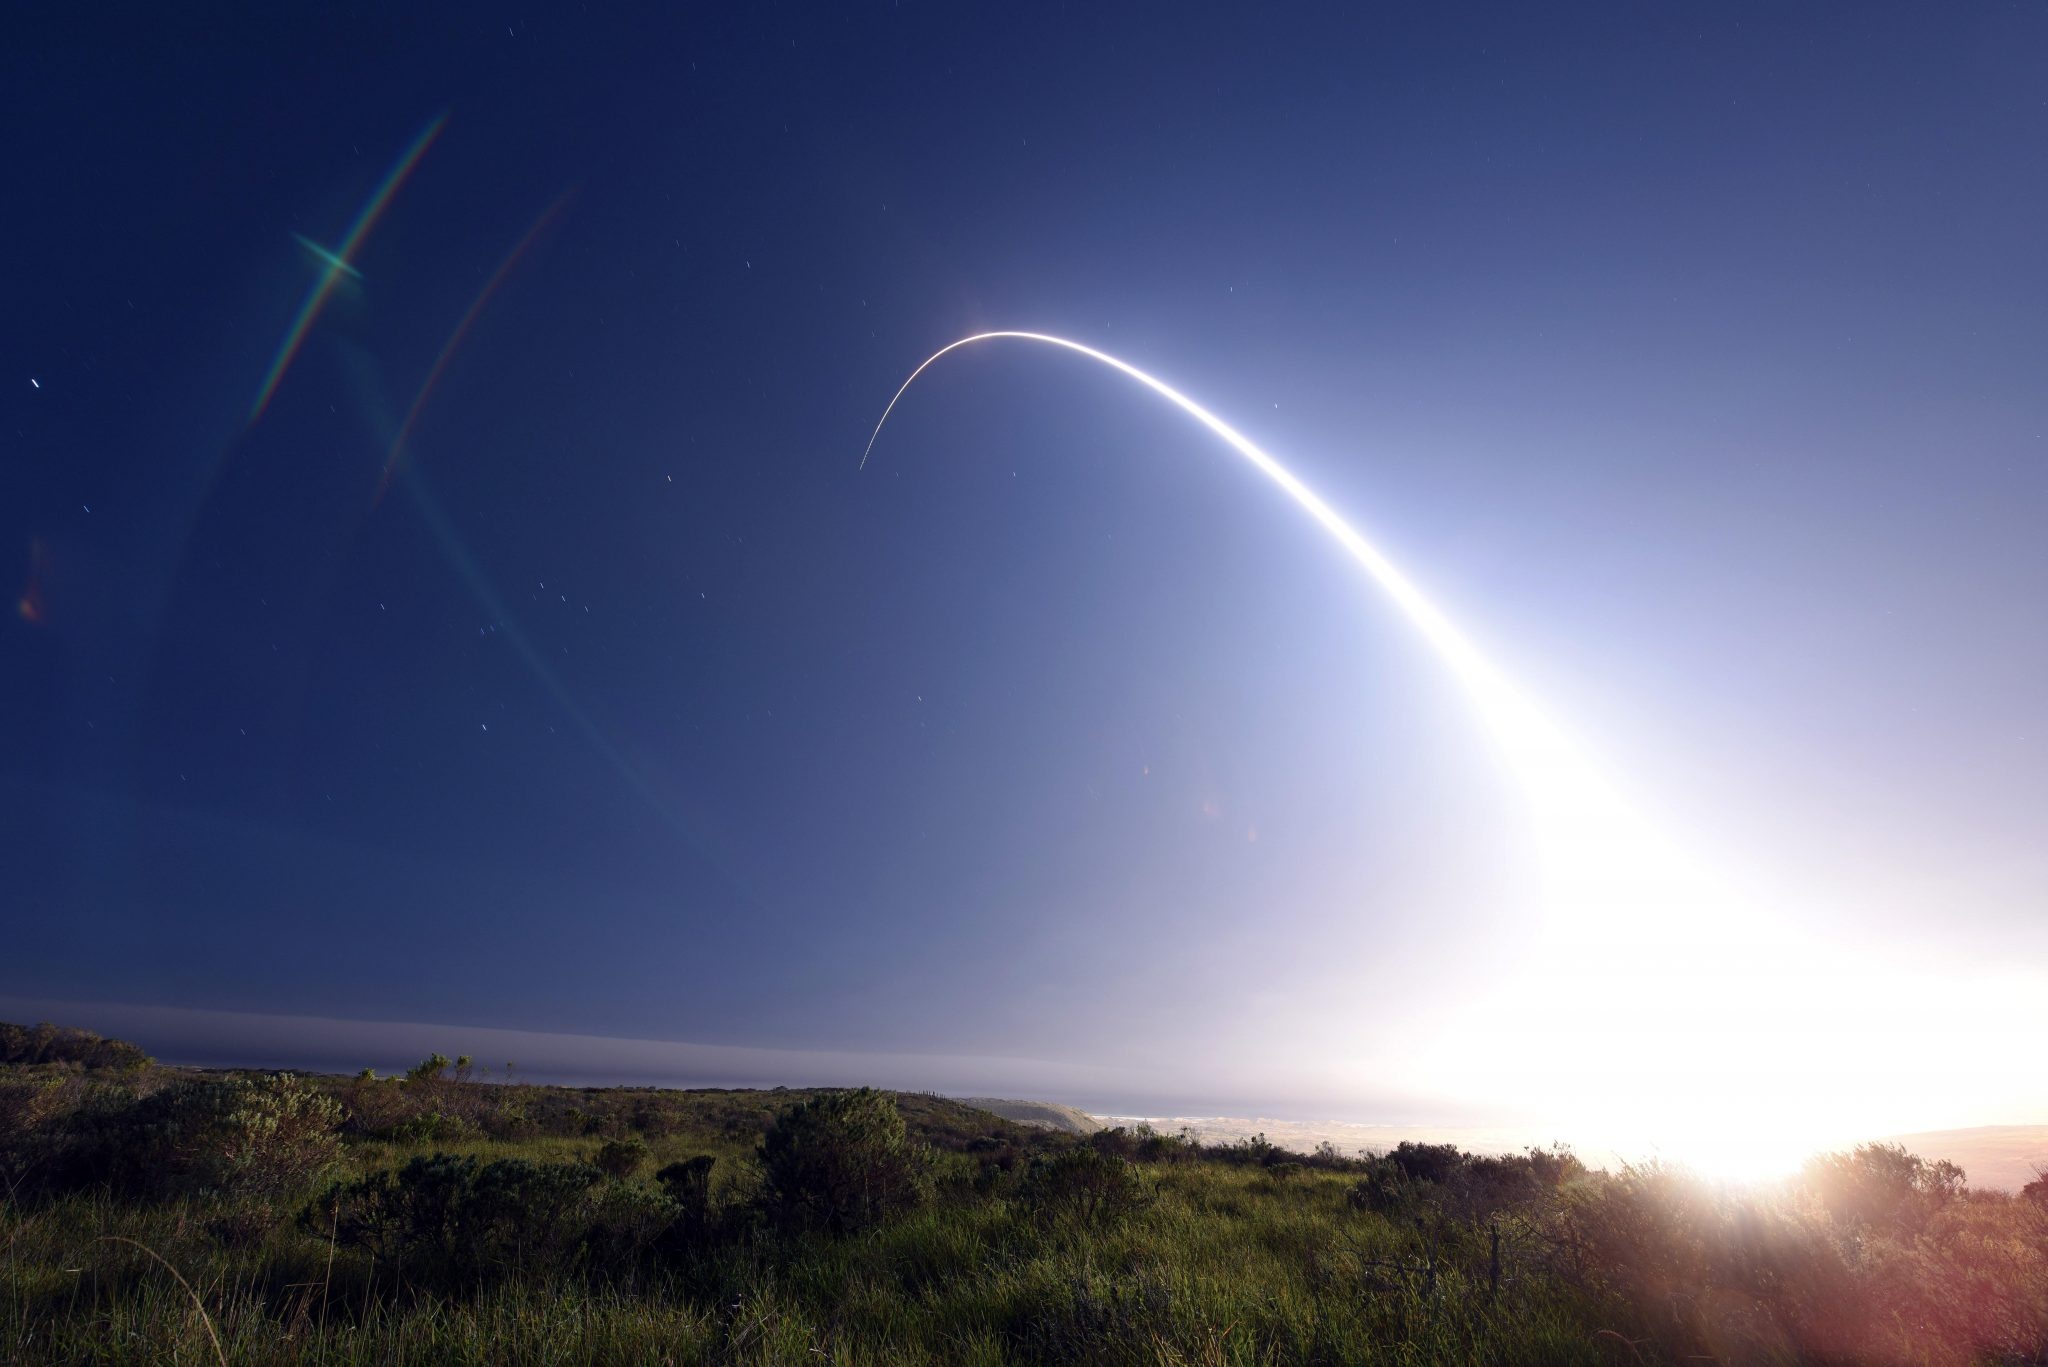 Why is America getting a new $100 billion nuclear weapon? - Bulletin of the Atomic Scientists